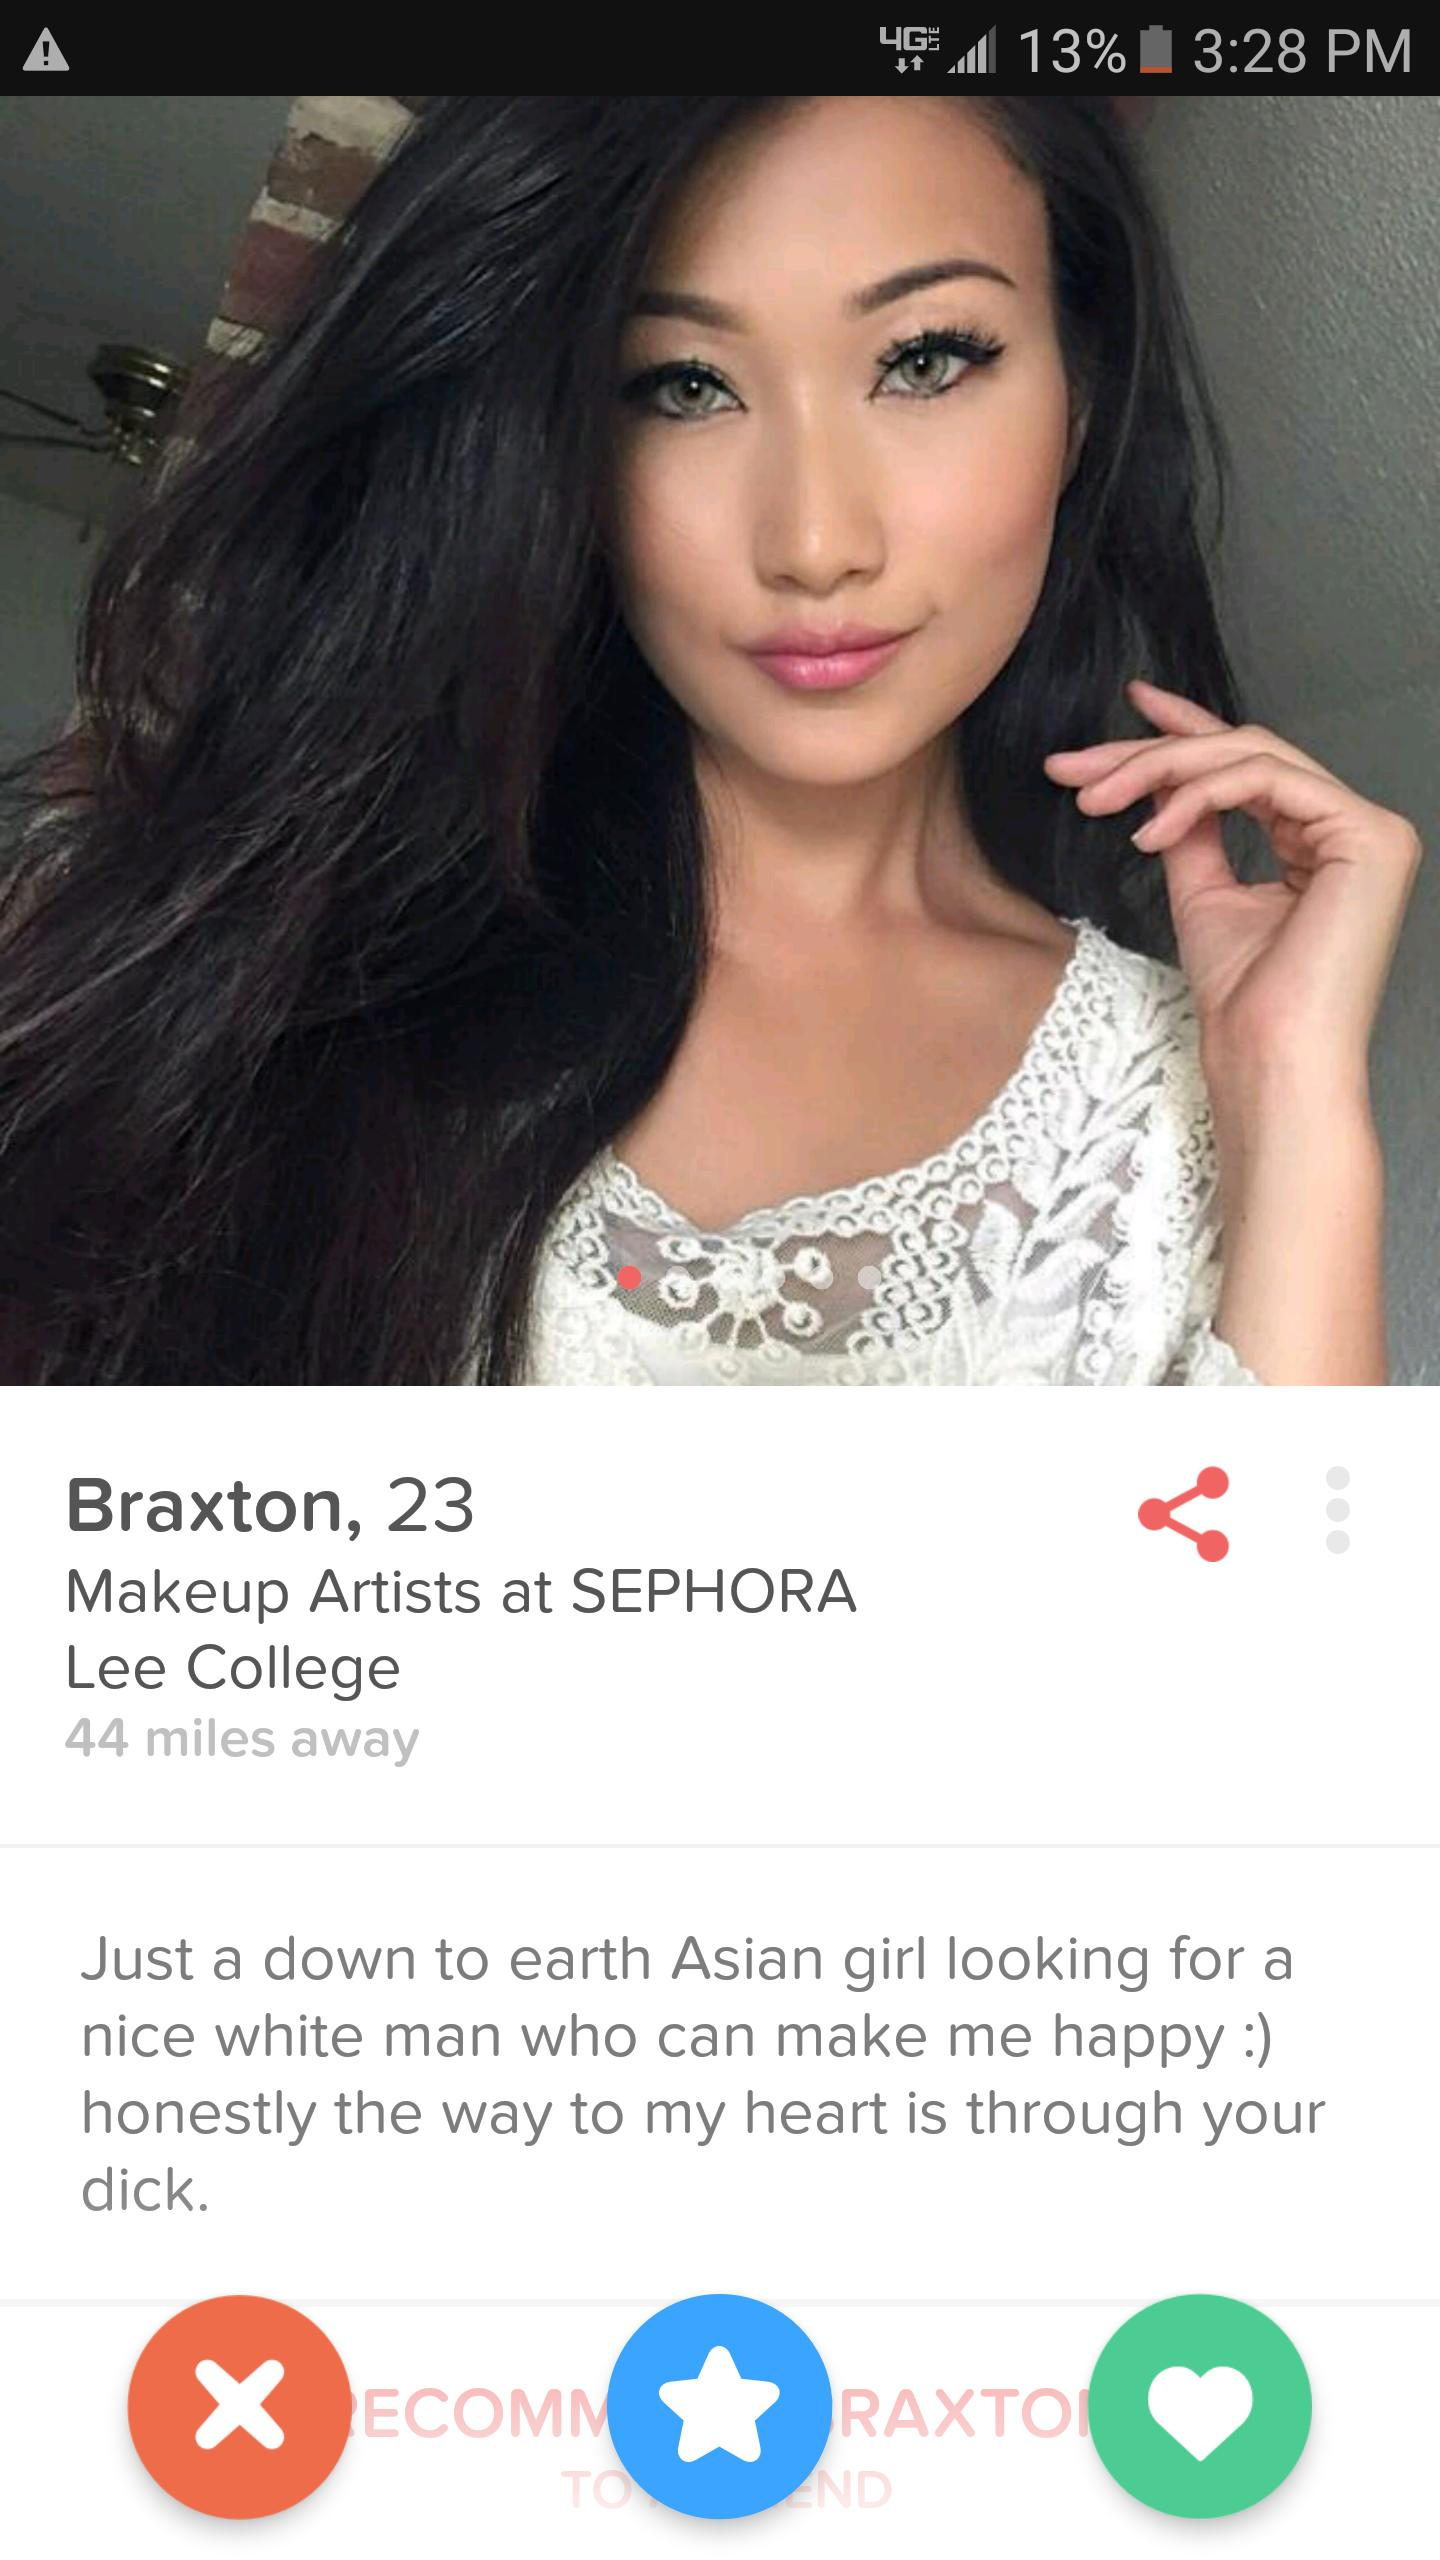 The BestWorst Profiles Amp Conversations In The Tinder